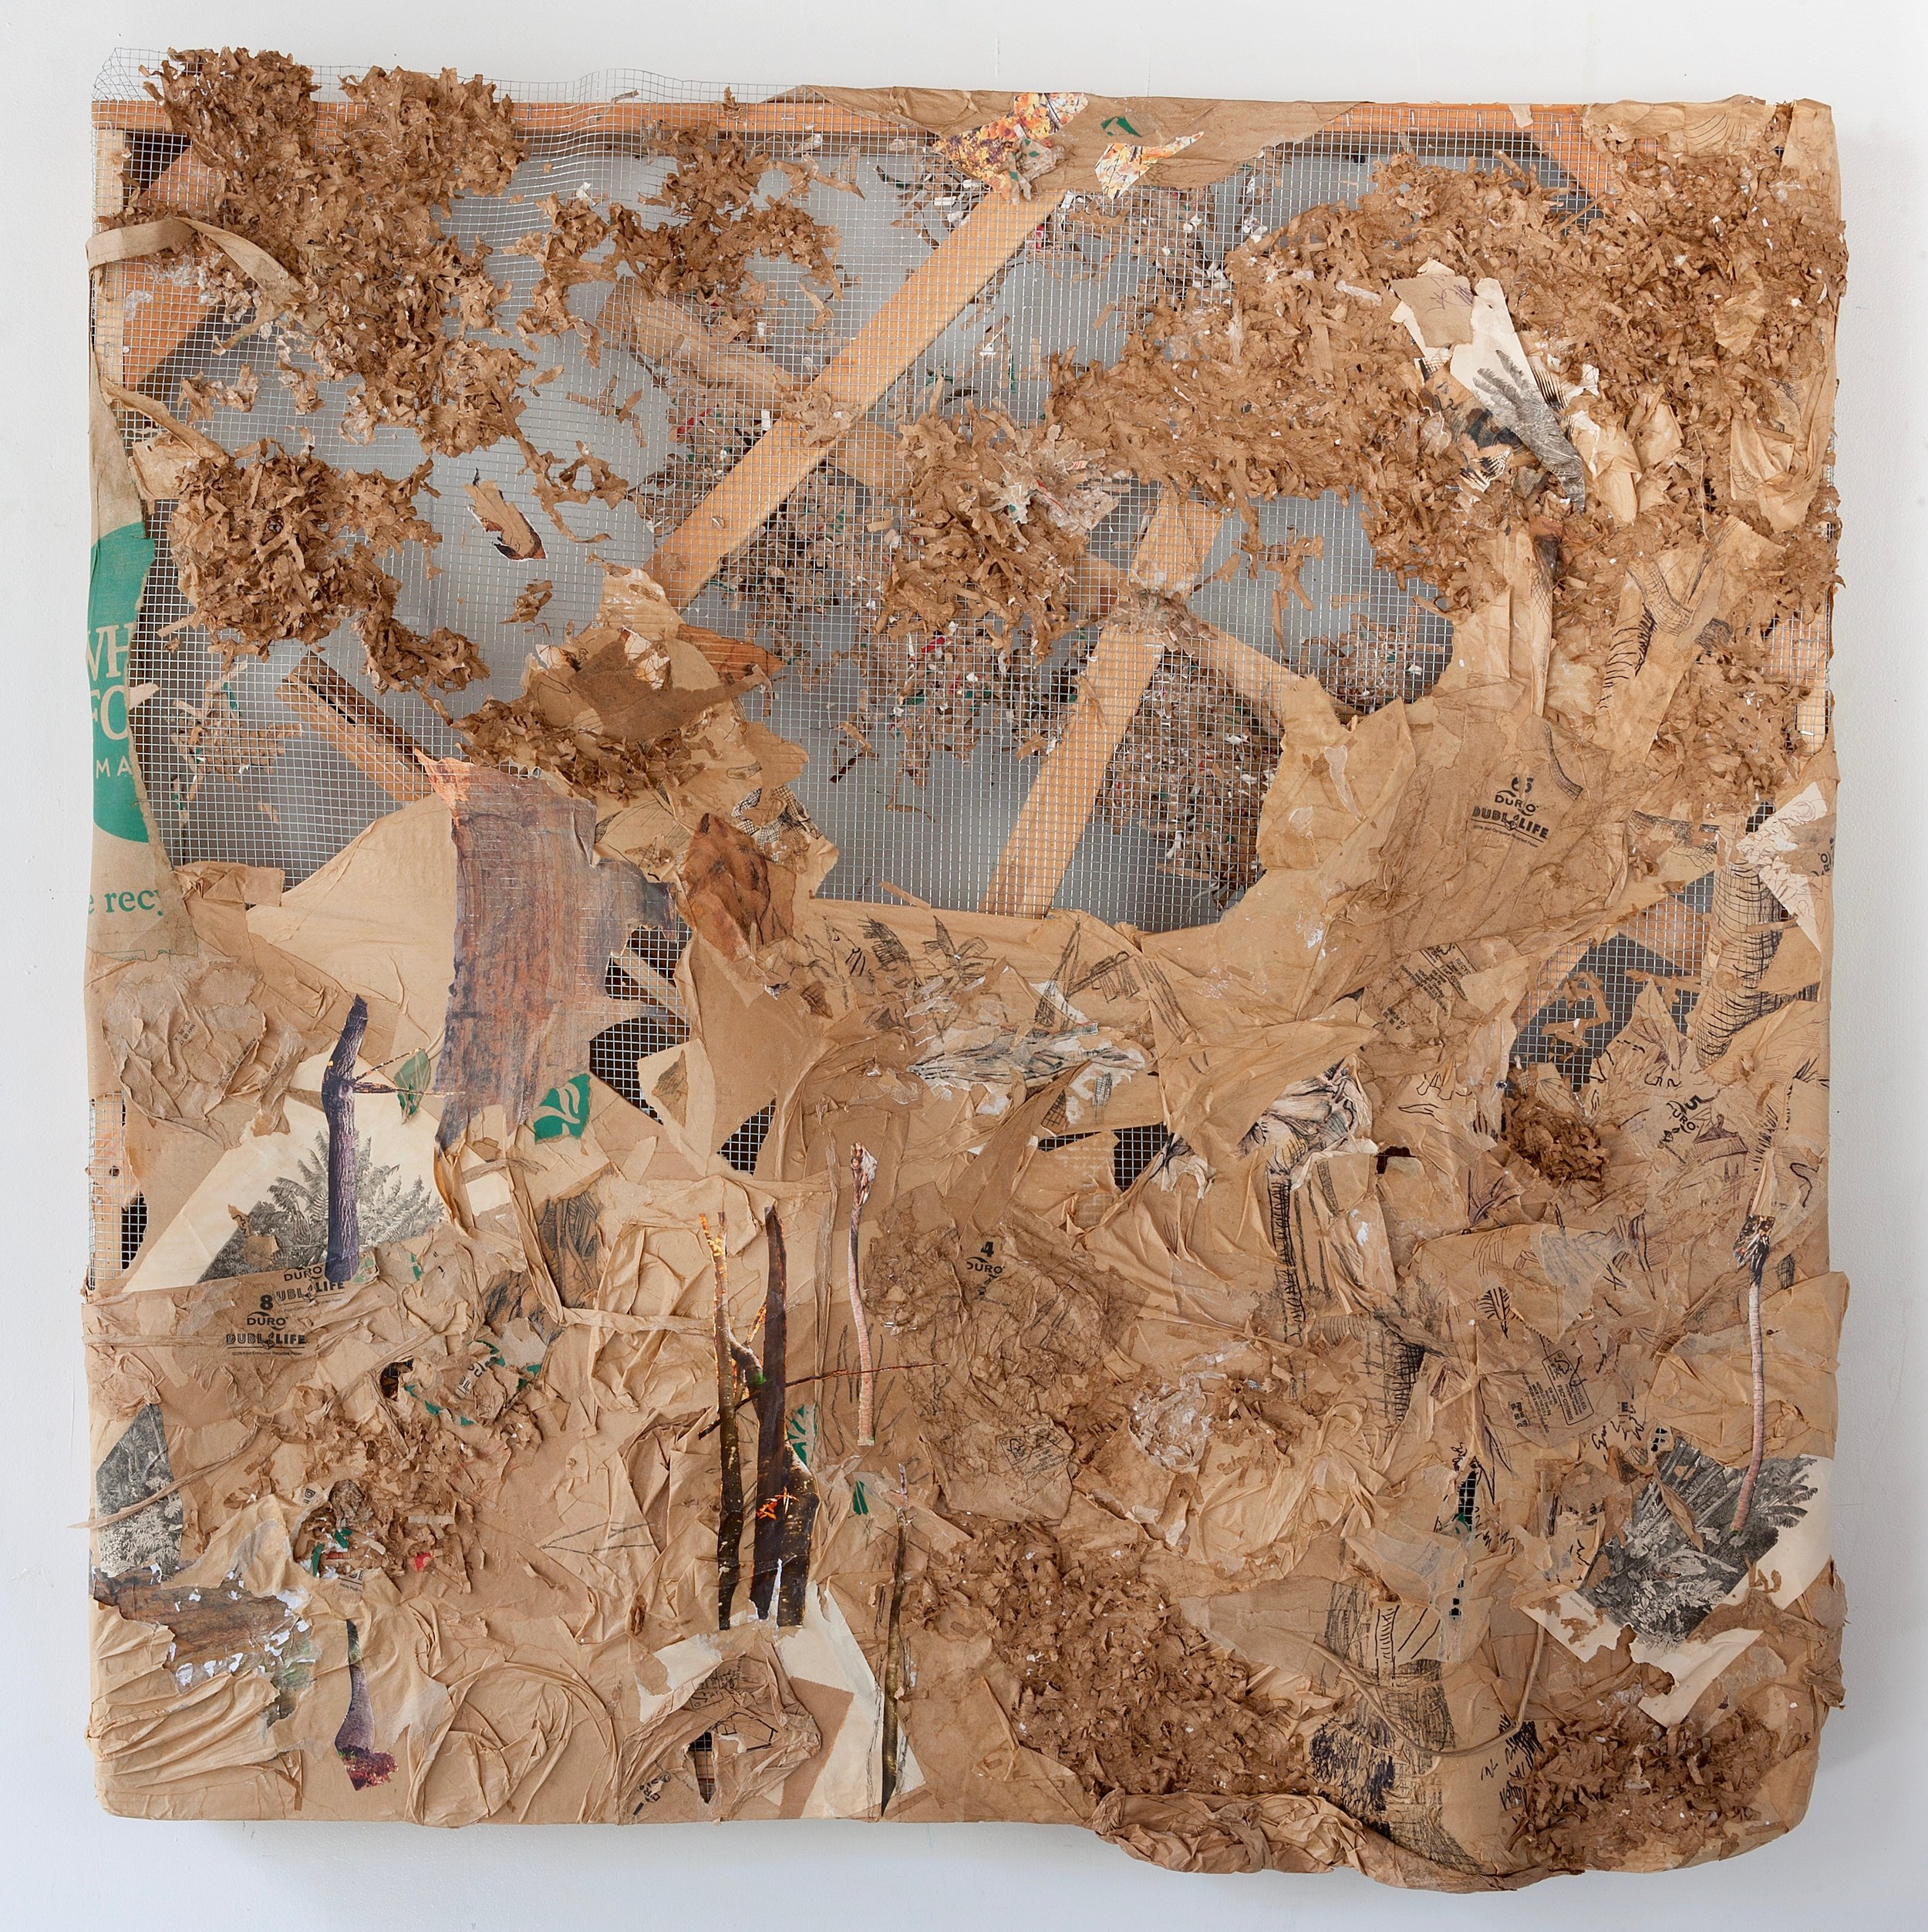 DURO DUBL LIFE , 2017, Duro Dubl Life brand paper bags, artist's old life drawings, 19th century engraving, nature calendars, and pen on chicken wire and wooden painting stretchers, 48 x 48 inches